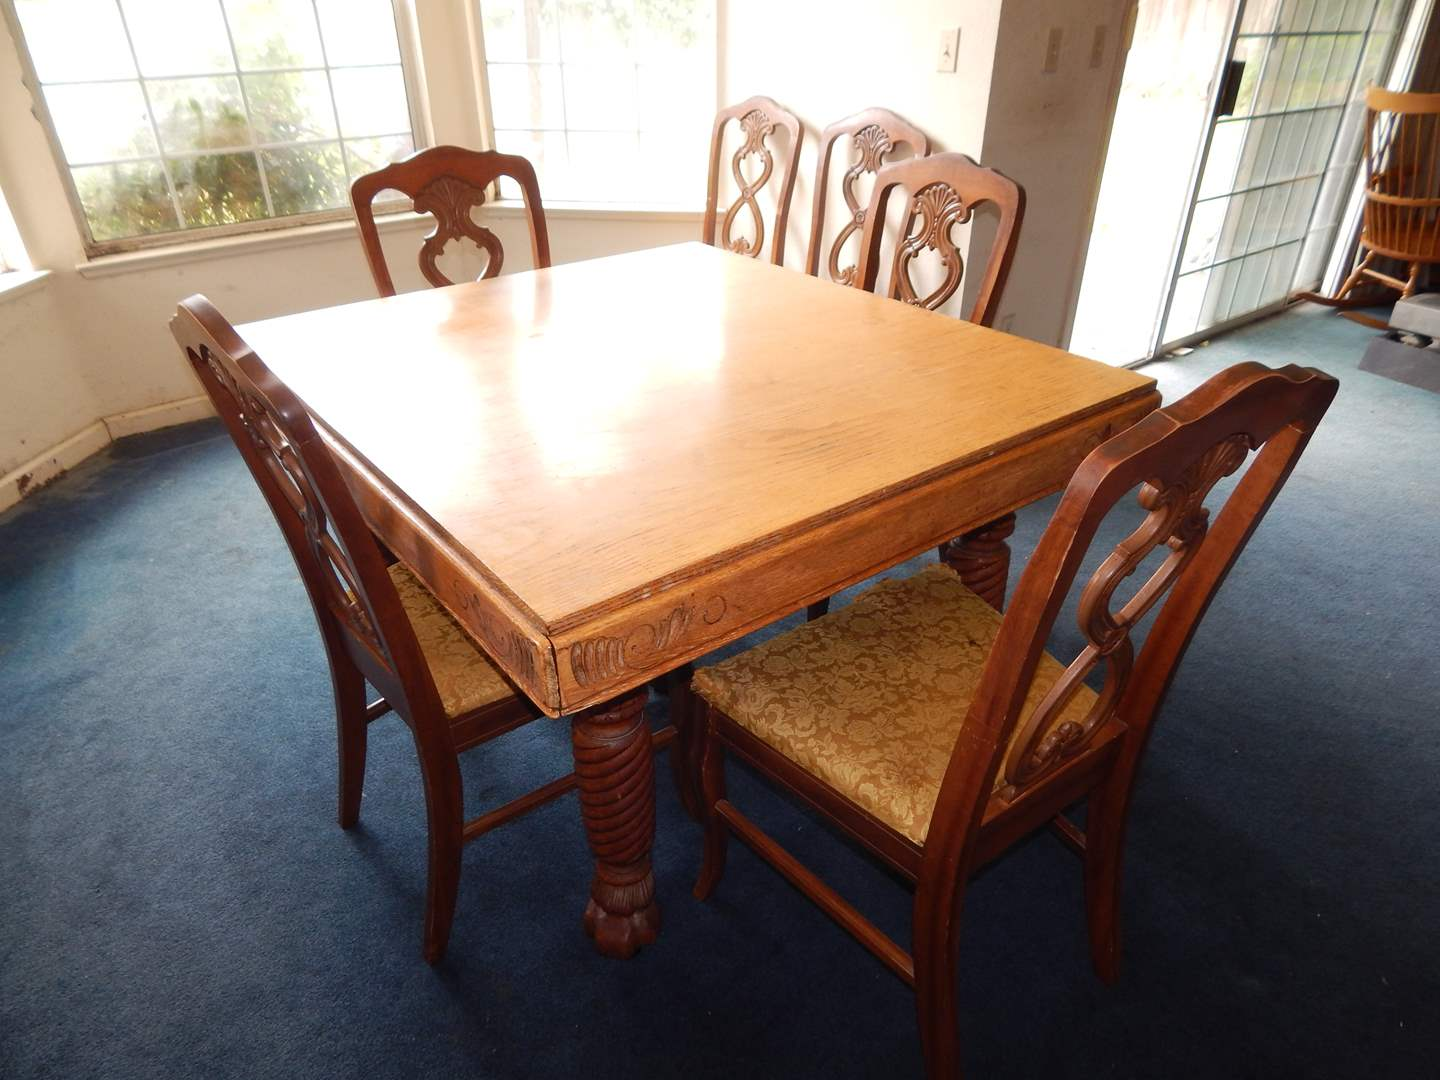 Lot 7 Antique Dining Room Table With Pull Out Leaves And 6 Chairs Auction By Sac Valley Auctions